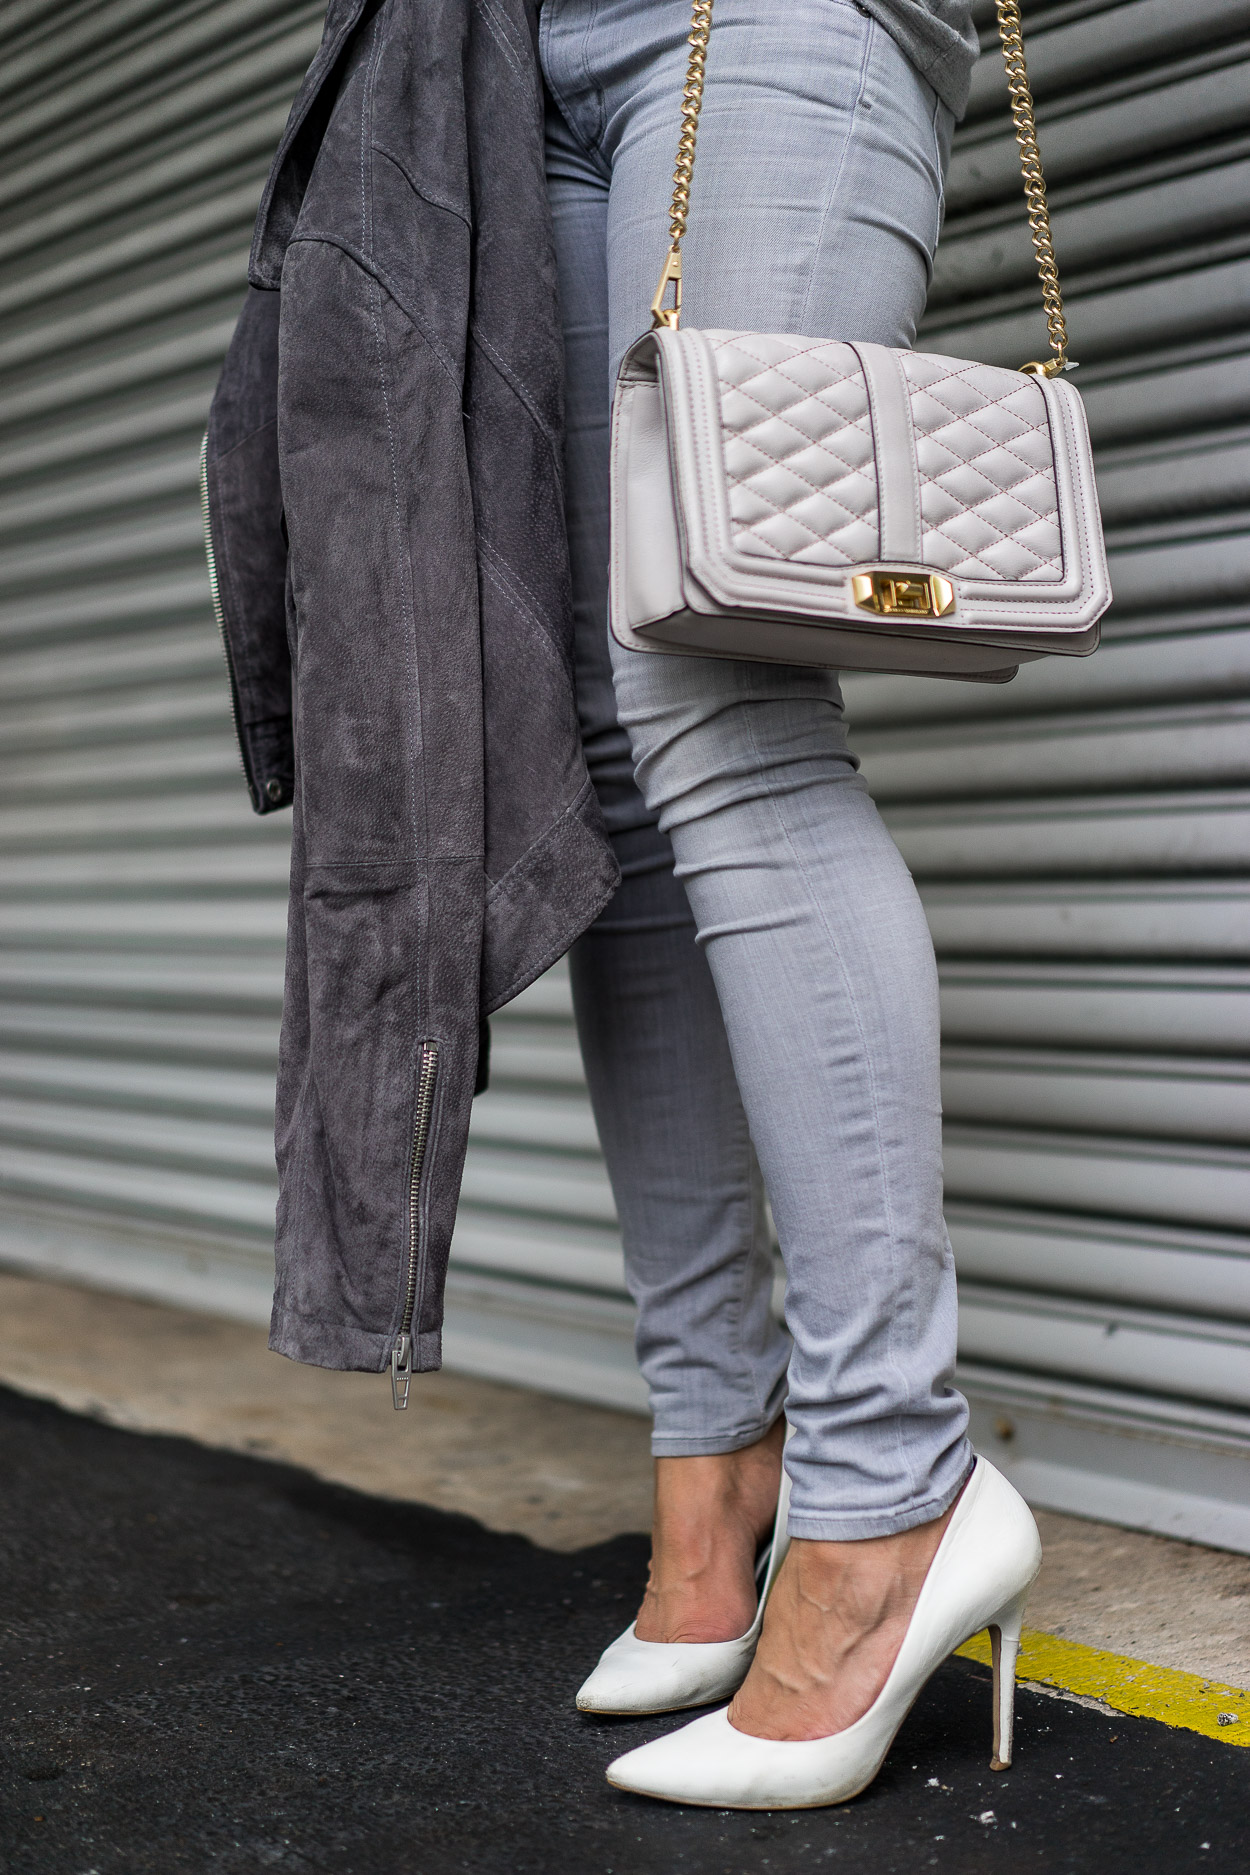 Blogger Amanda of A Glam Lifestyle wears Rebecca Minkoff Love Crossbody bag and Blank NYC grey suede jacket for easy Fall style